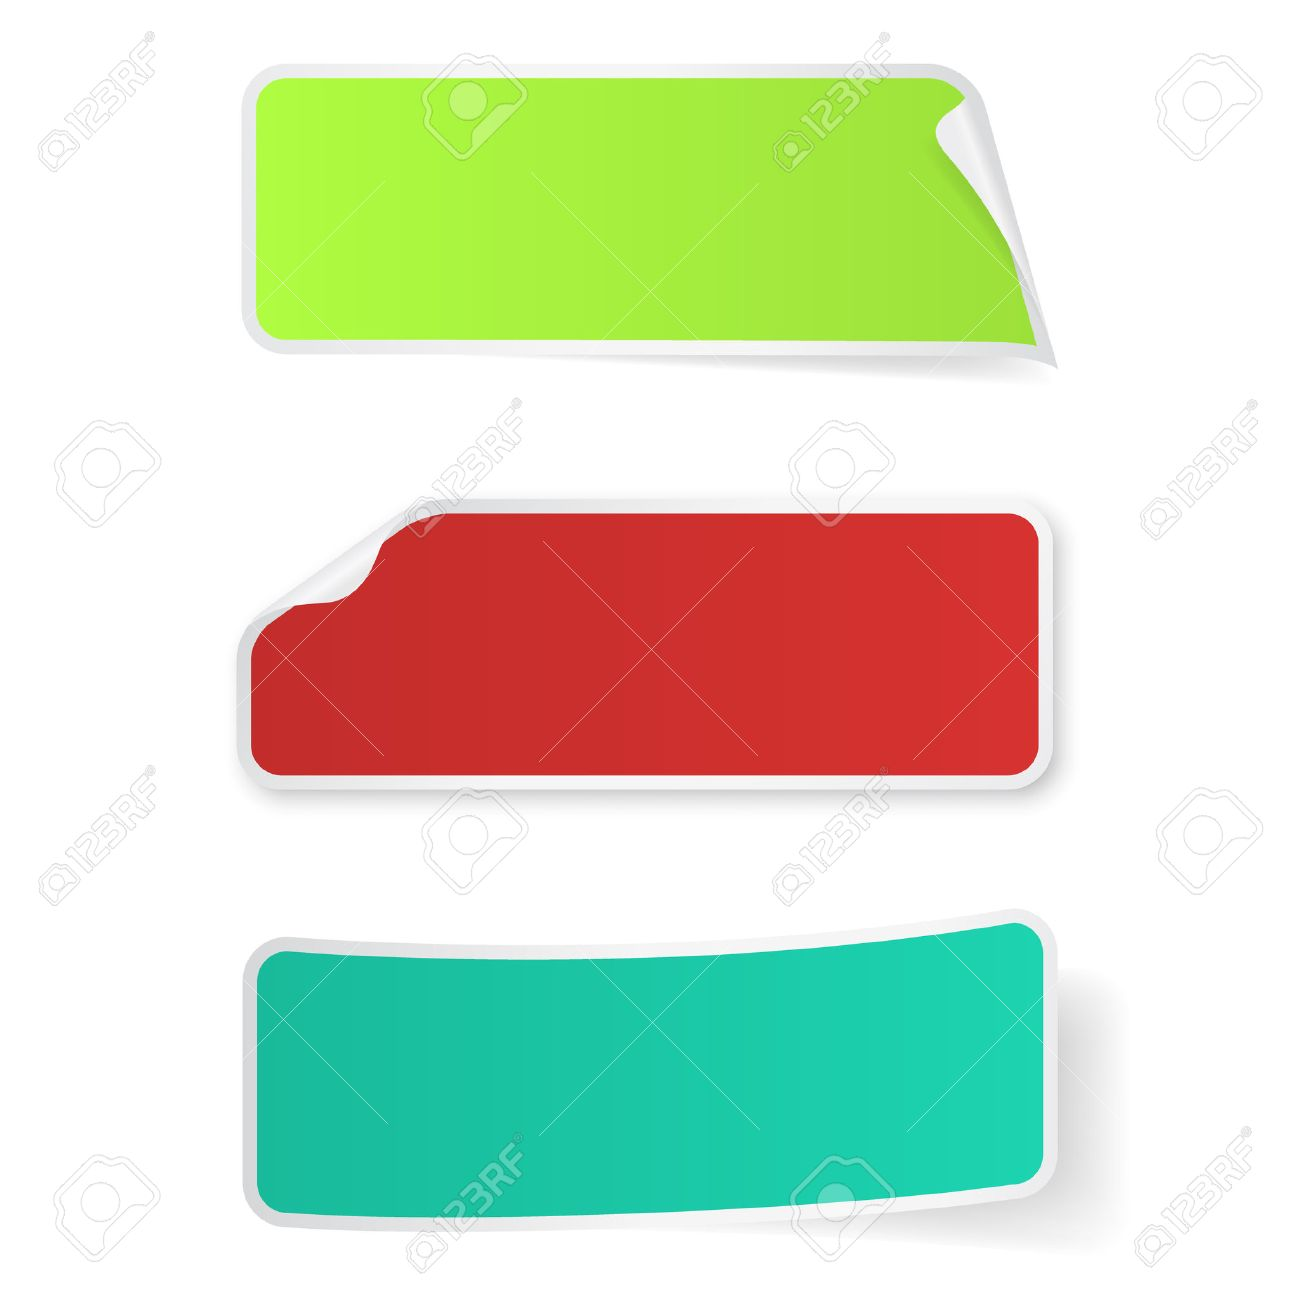 Bright multi-colored stickers label isolated on white background - 37153057